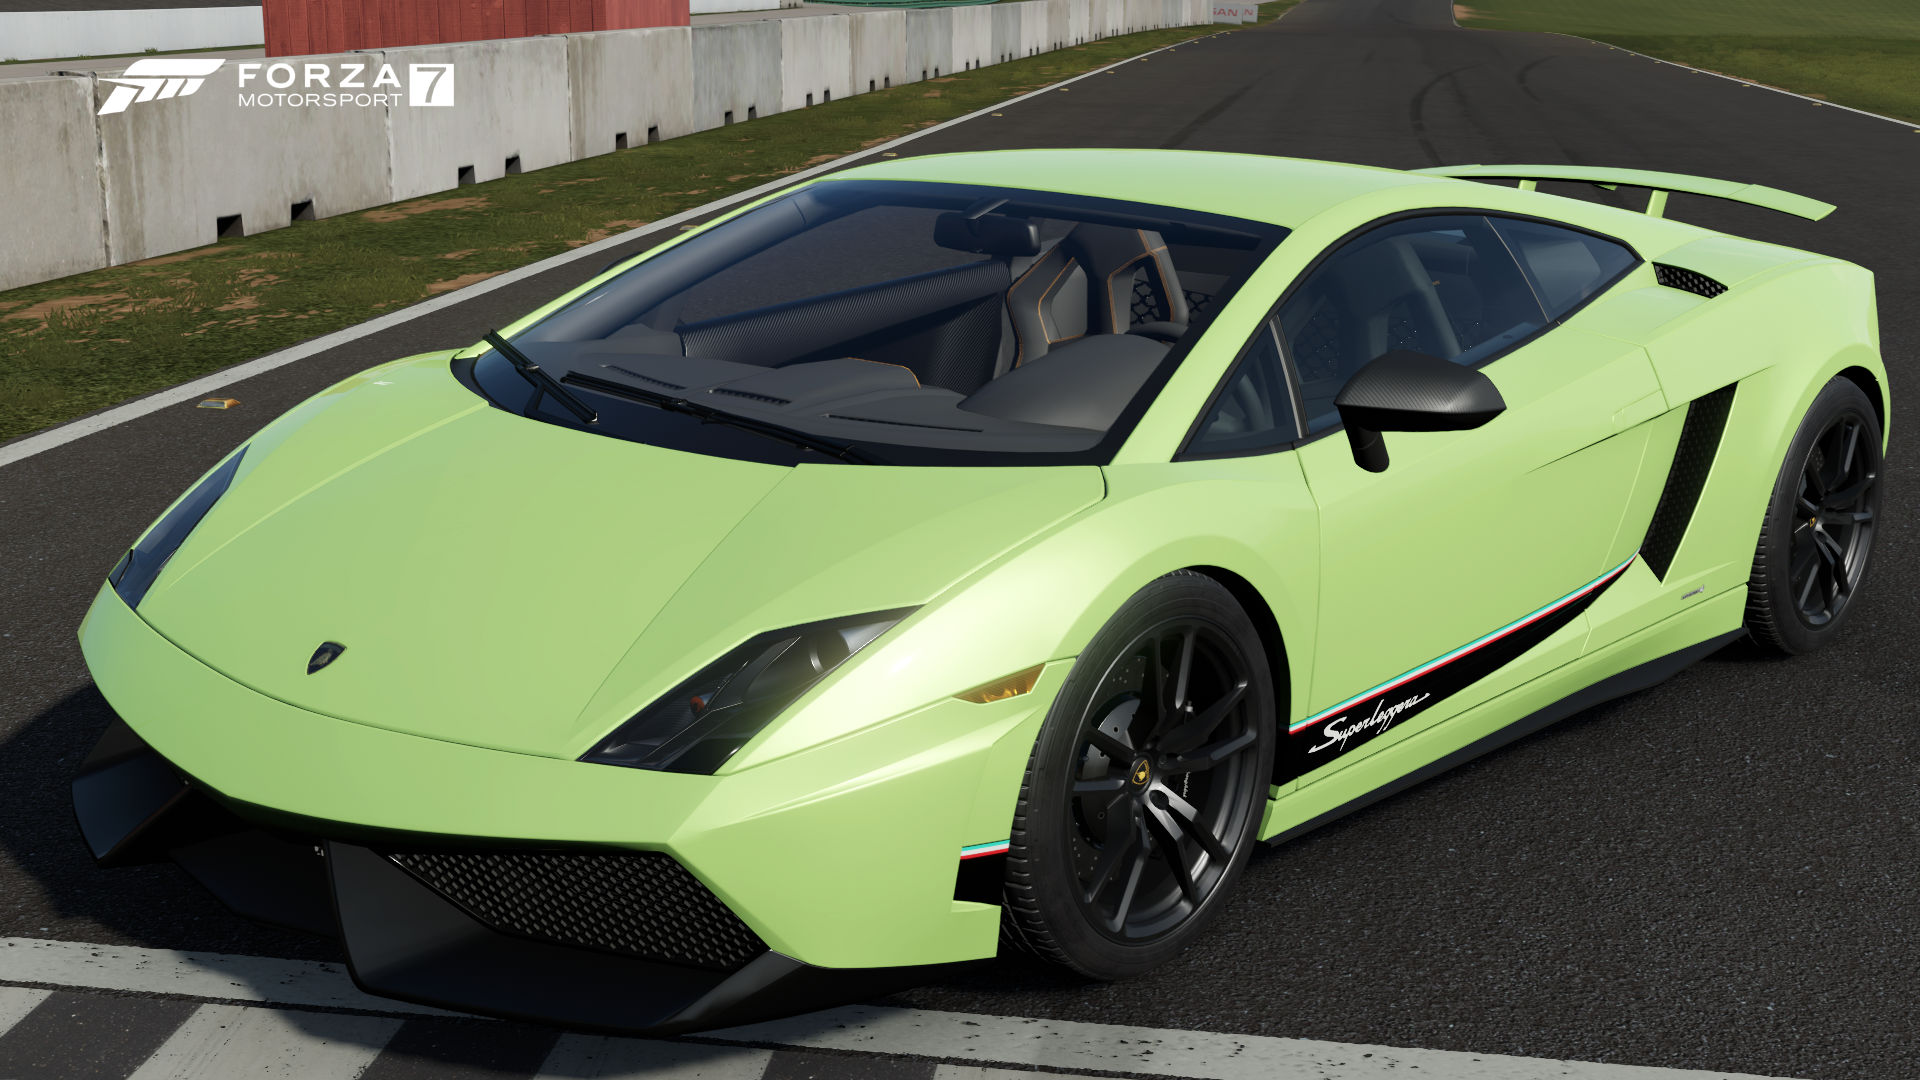 Marvelous The 2011 Lamborghini Gallardo LP 570 4 Superleggera In Forza Motorsport 7